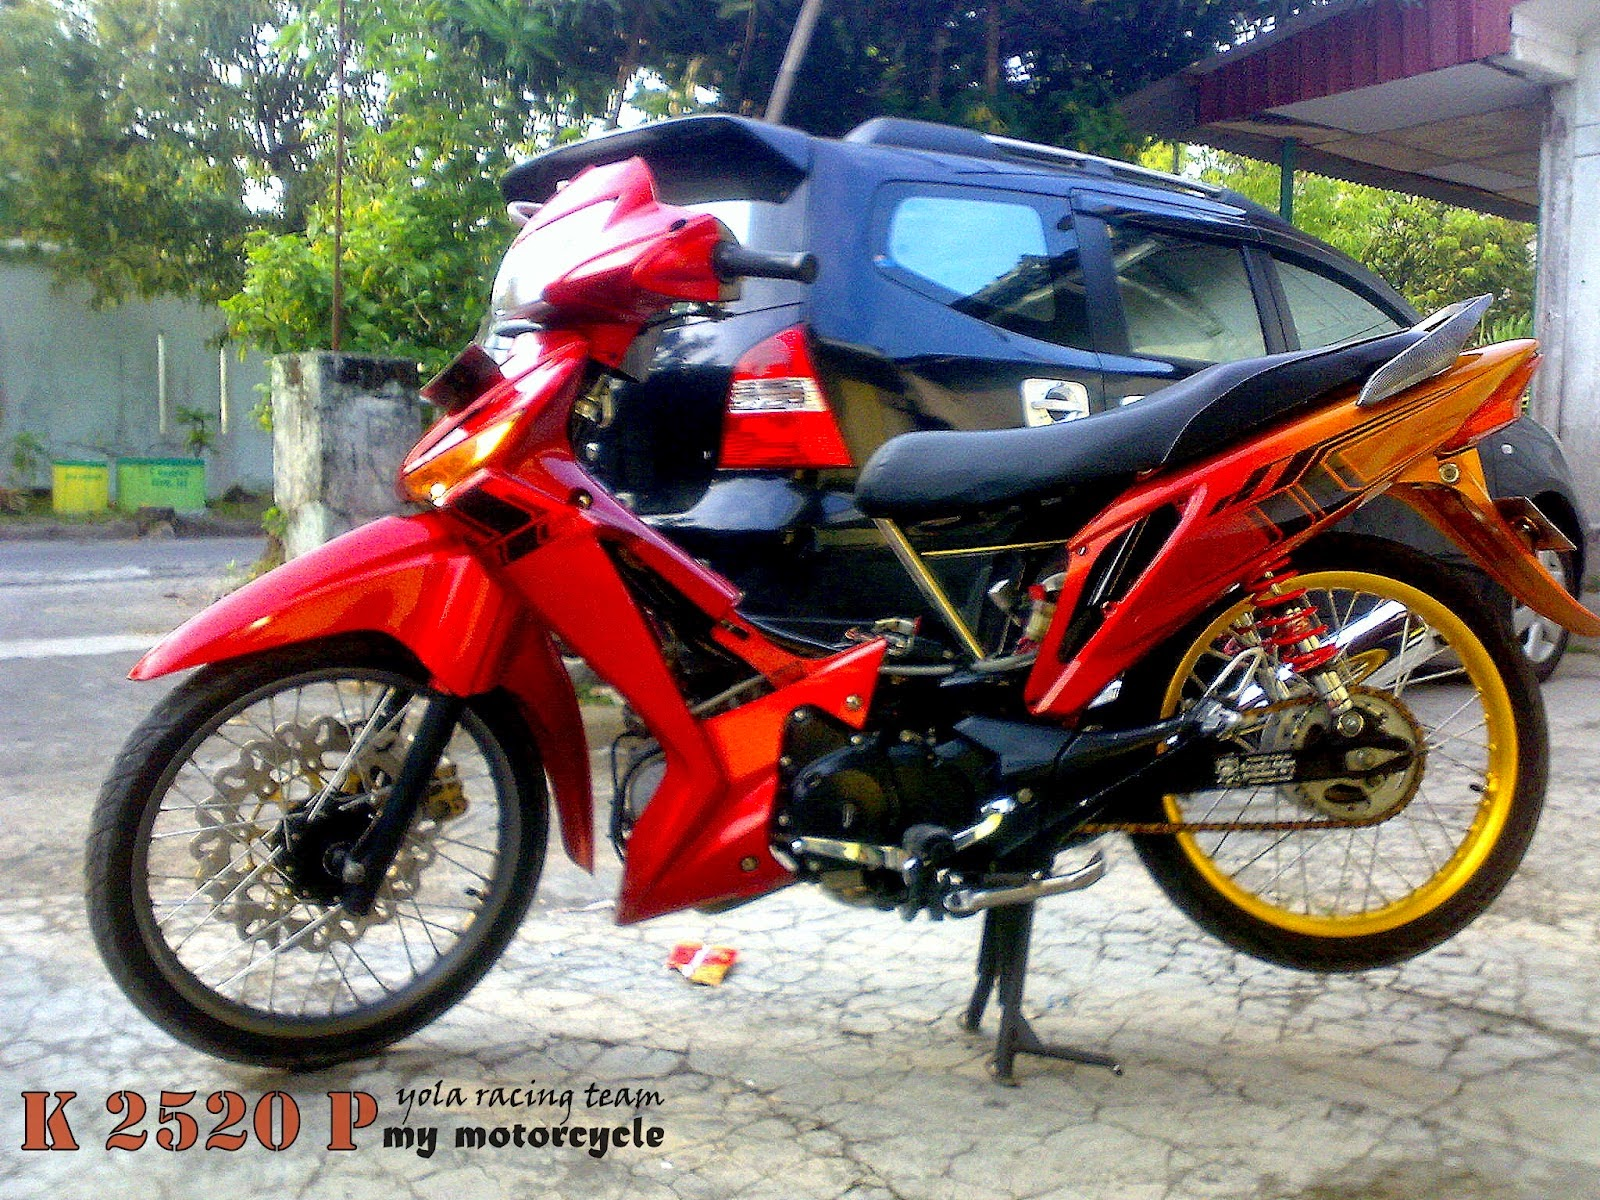 Revo Fit fi Modif Modifikasi Motor Revo Fit Revo